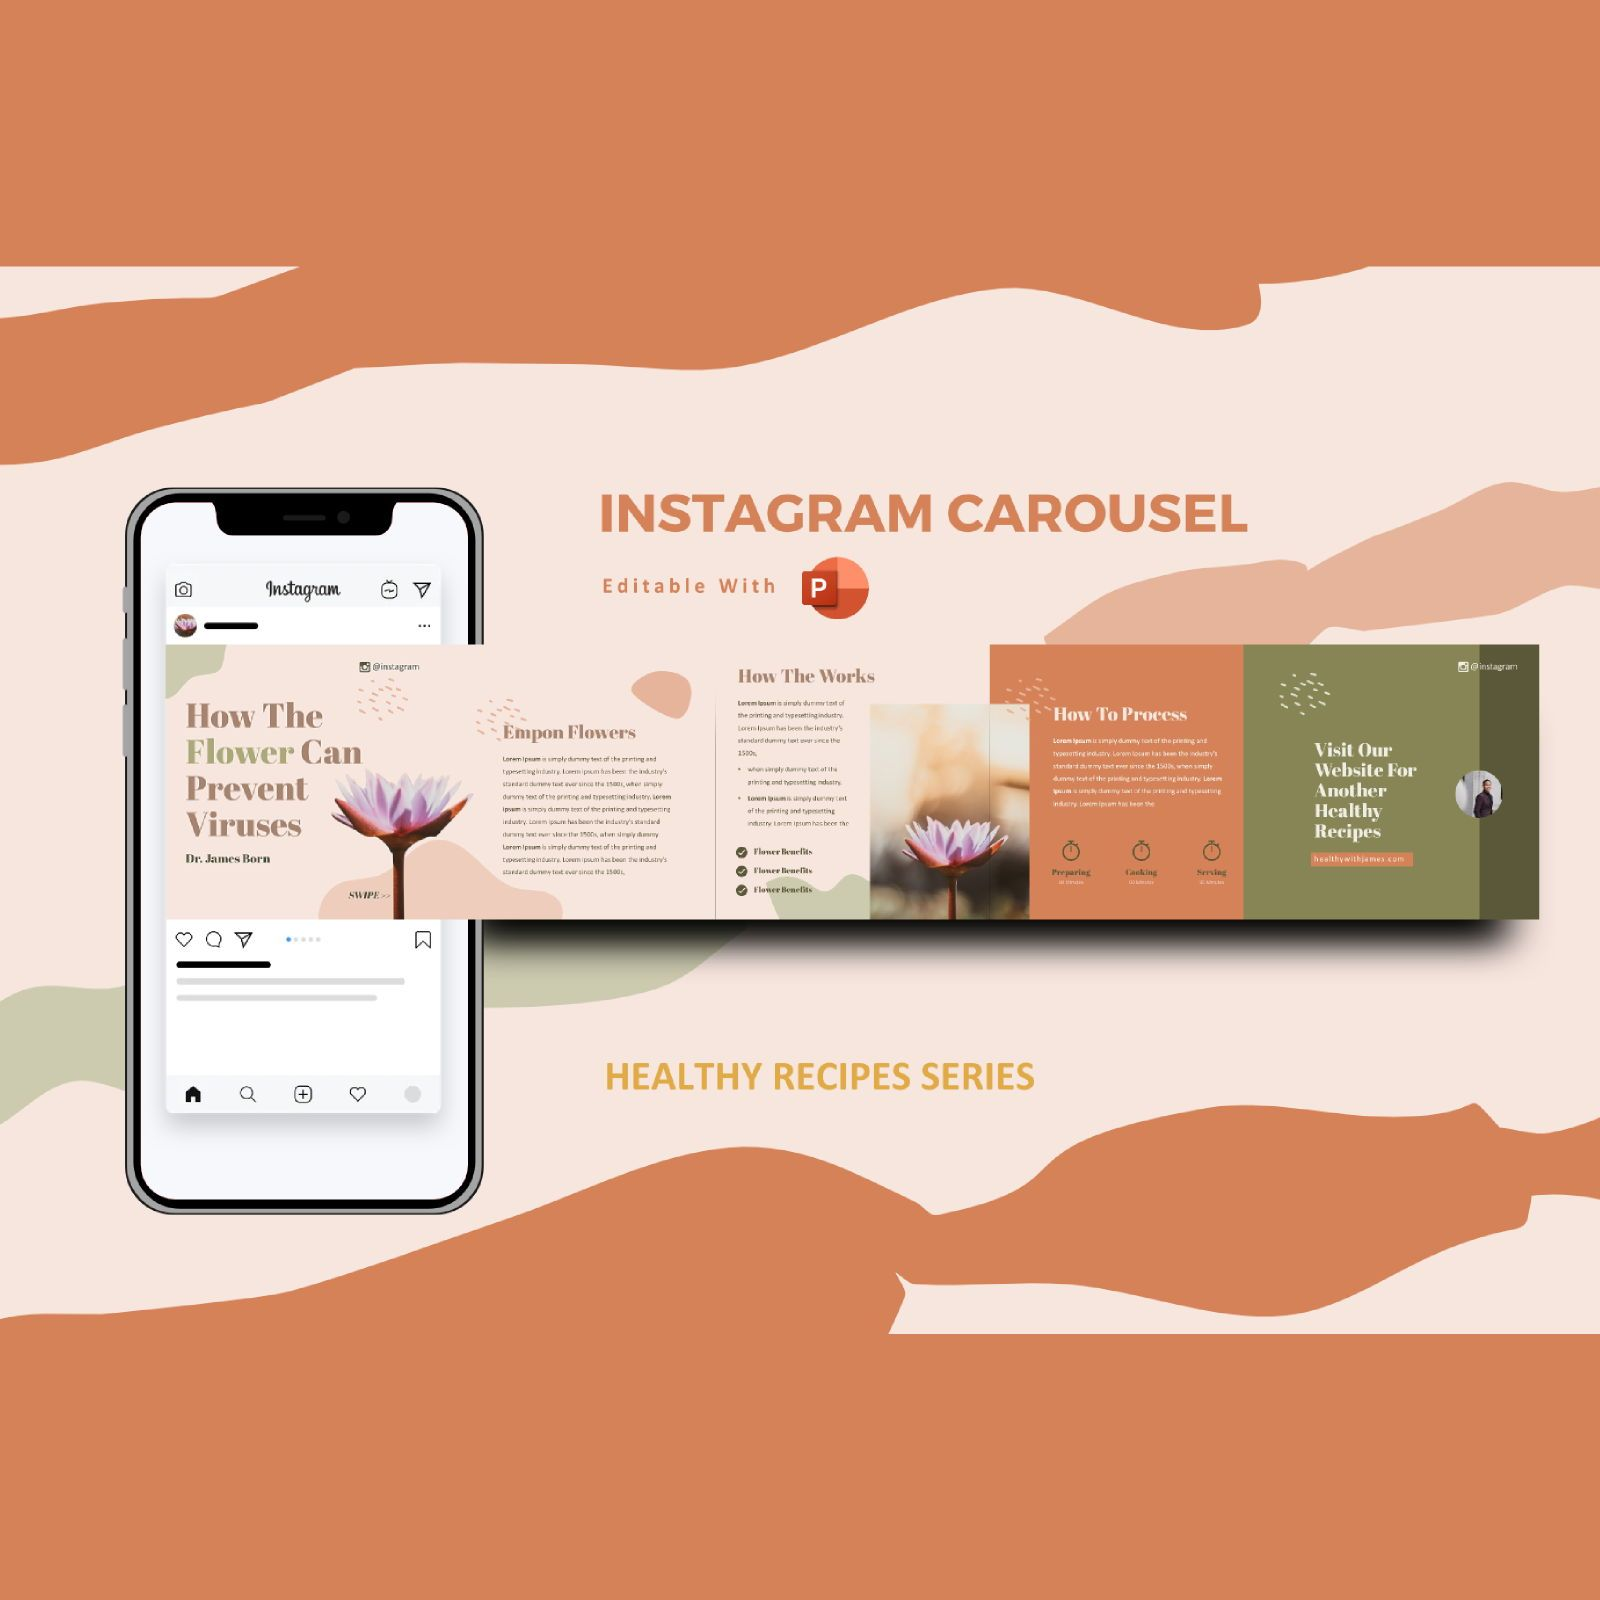 Healthy tips recipes instagram carousel powerpoint template, 07447, Infographics — PoweredTemplate.com